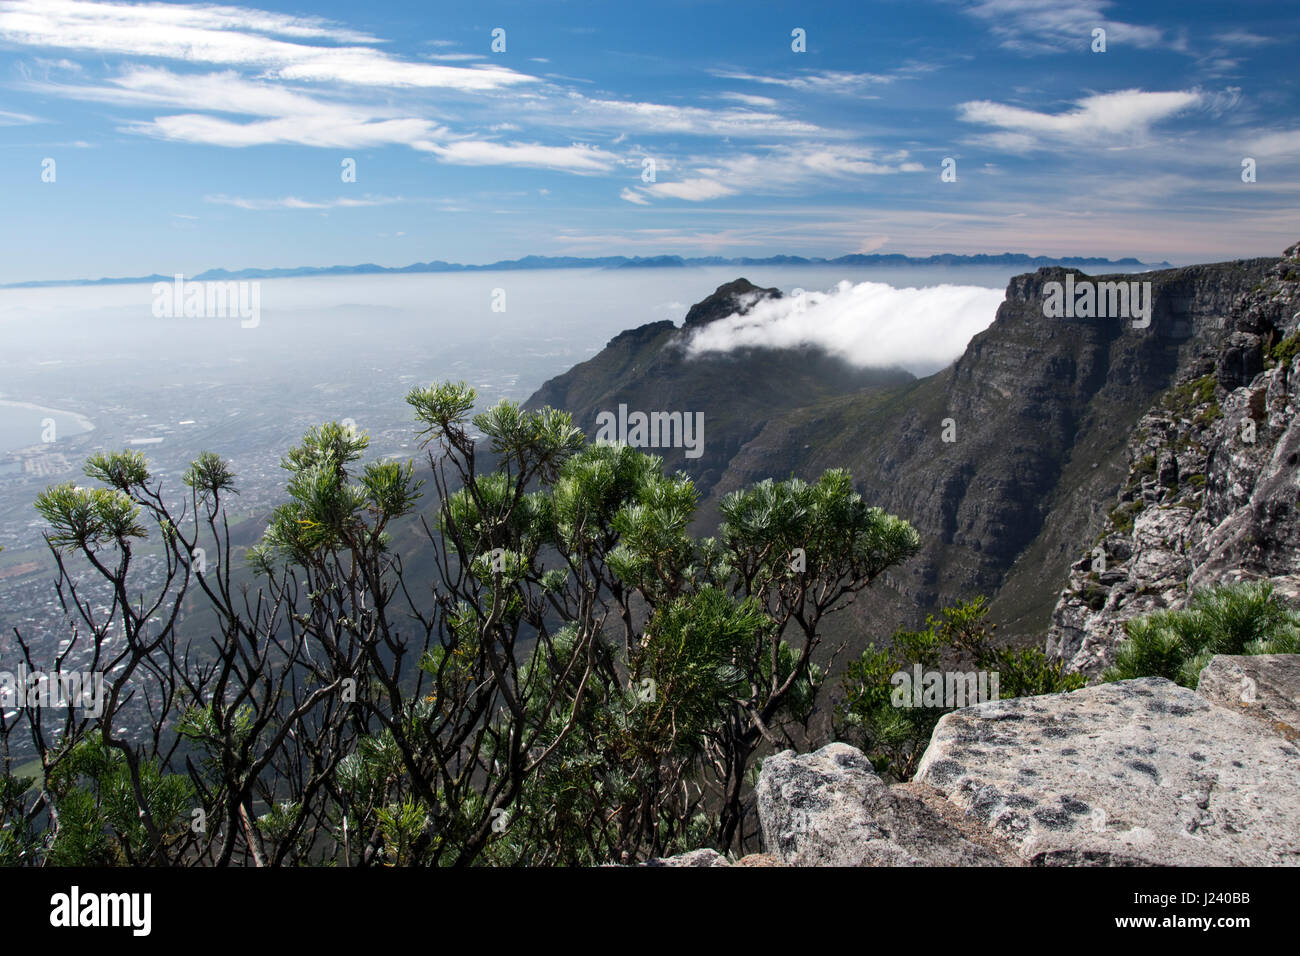 The view from the top of Table Mountain, the flat-topped mountain that overlooks Cape Town, South Africa. - Stock Image